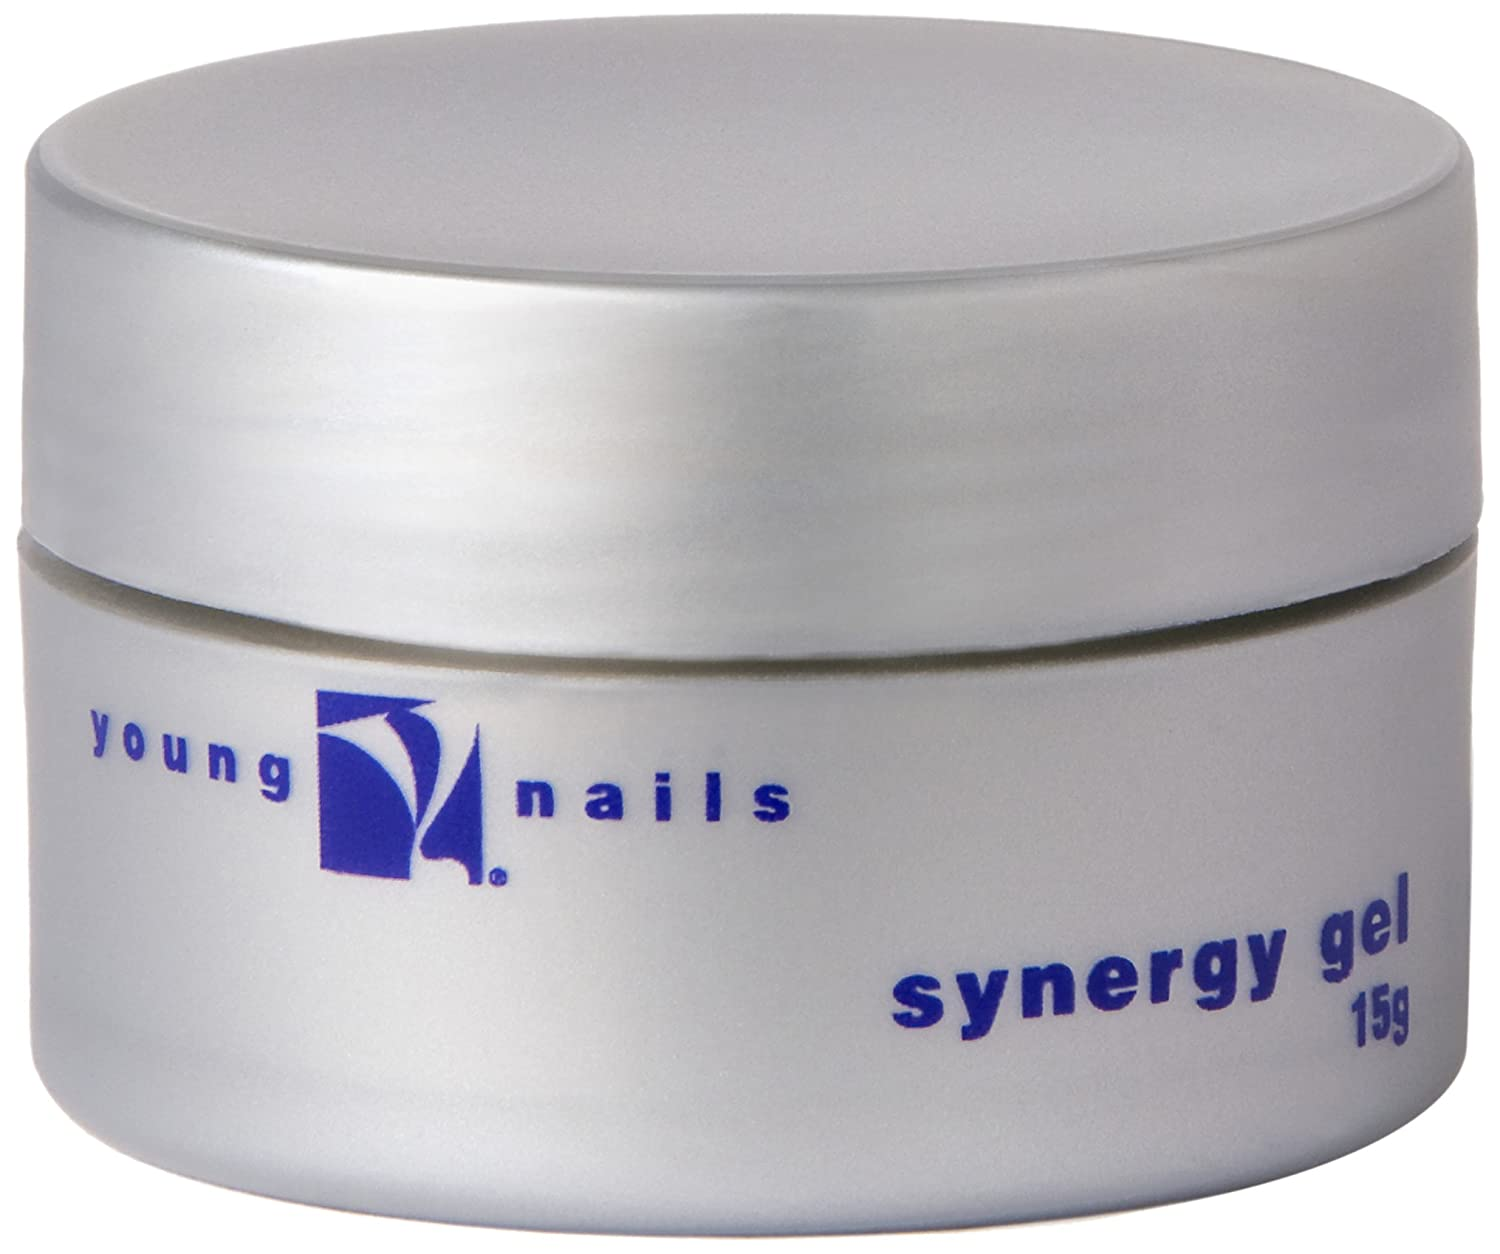 Young Nails Build Gel, 15 Gram by Young Nails